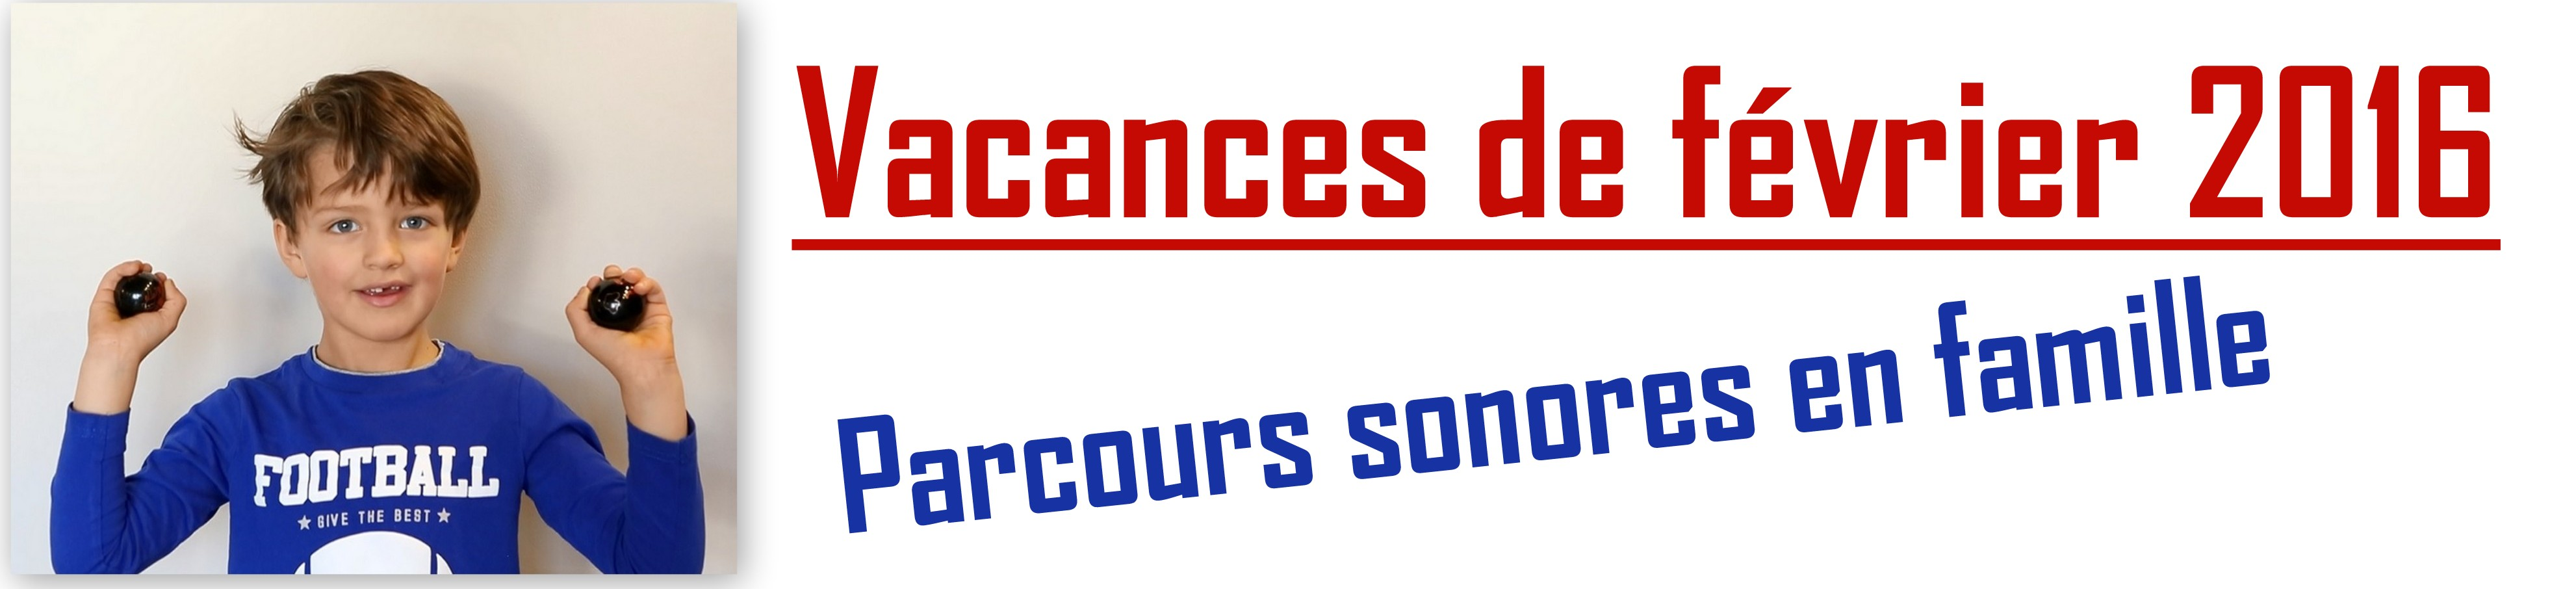 parcours sonores